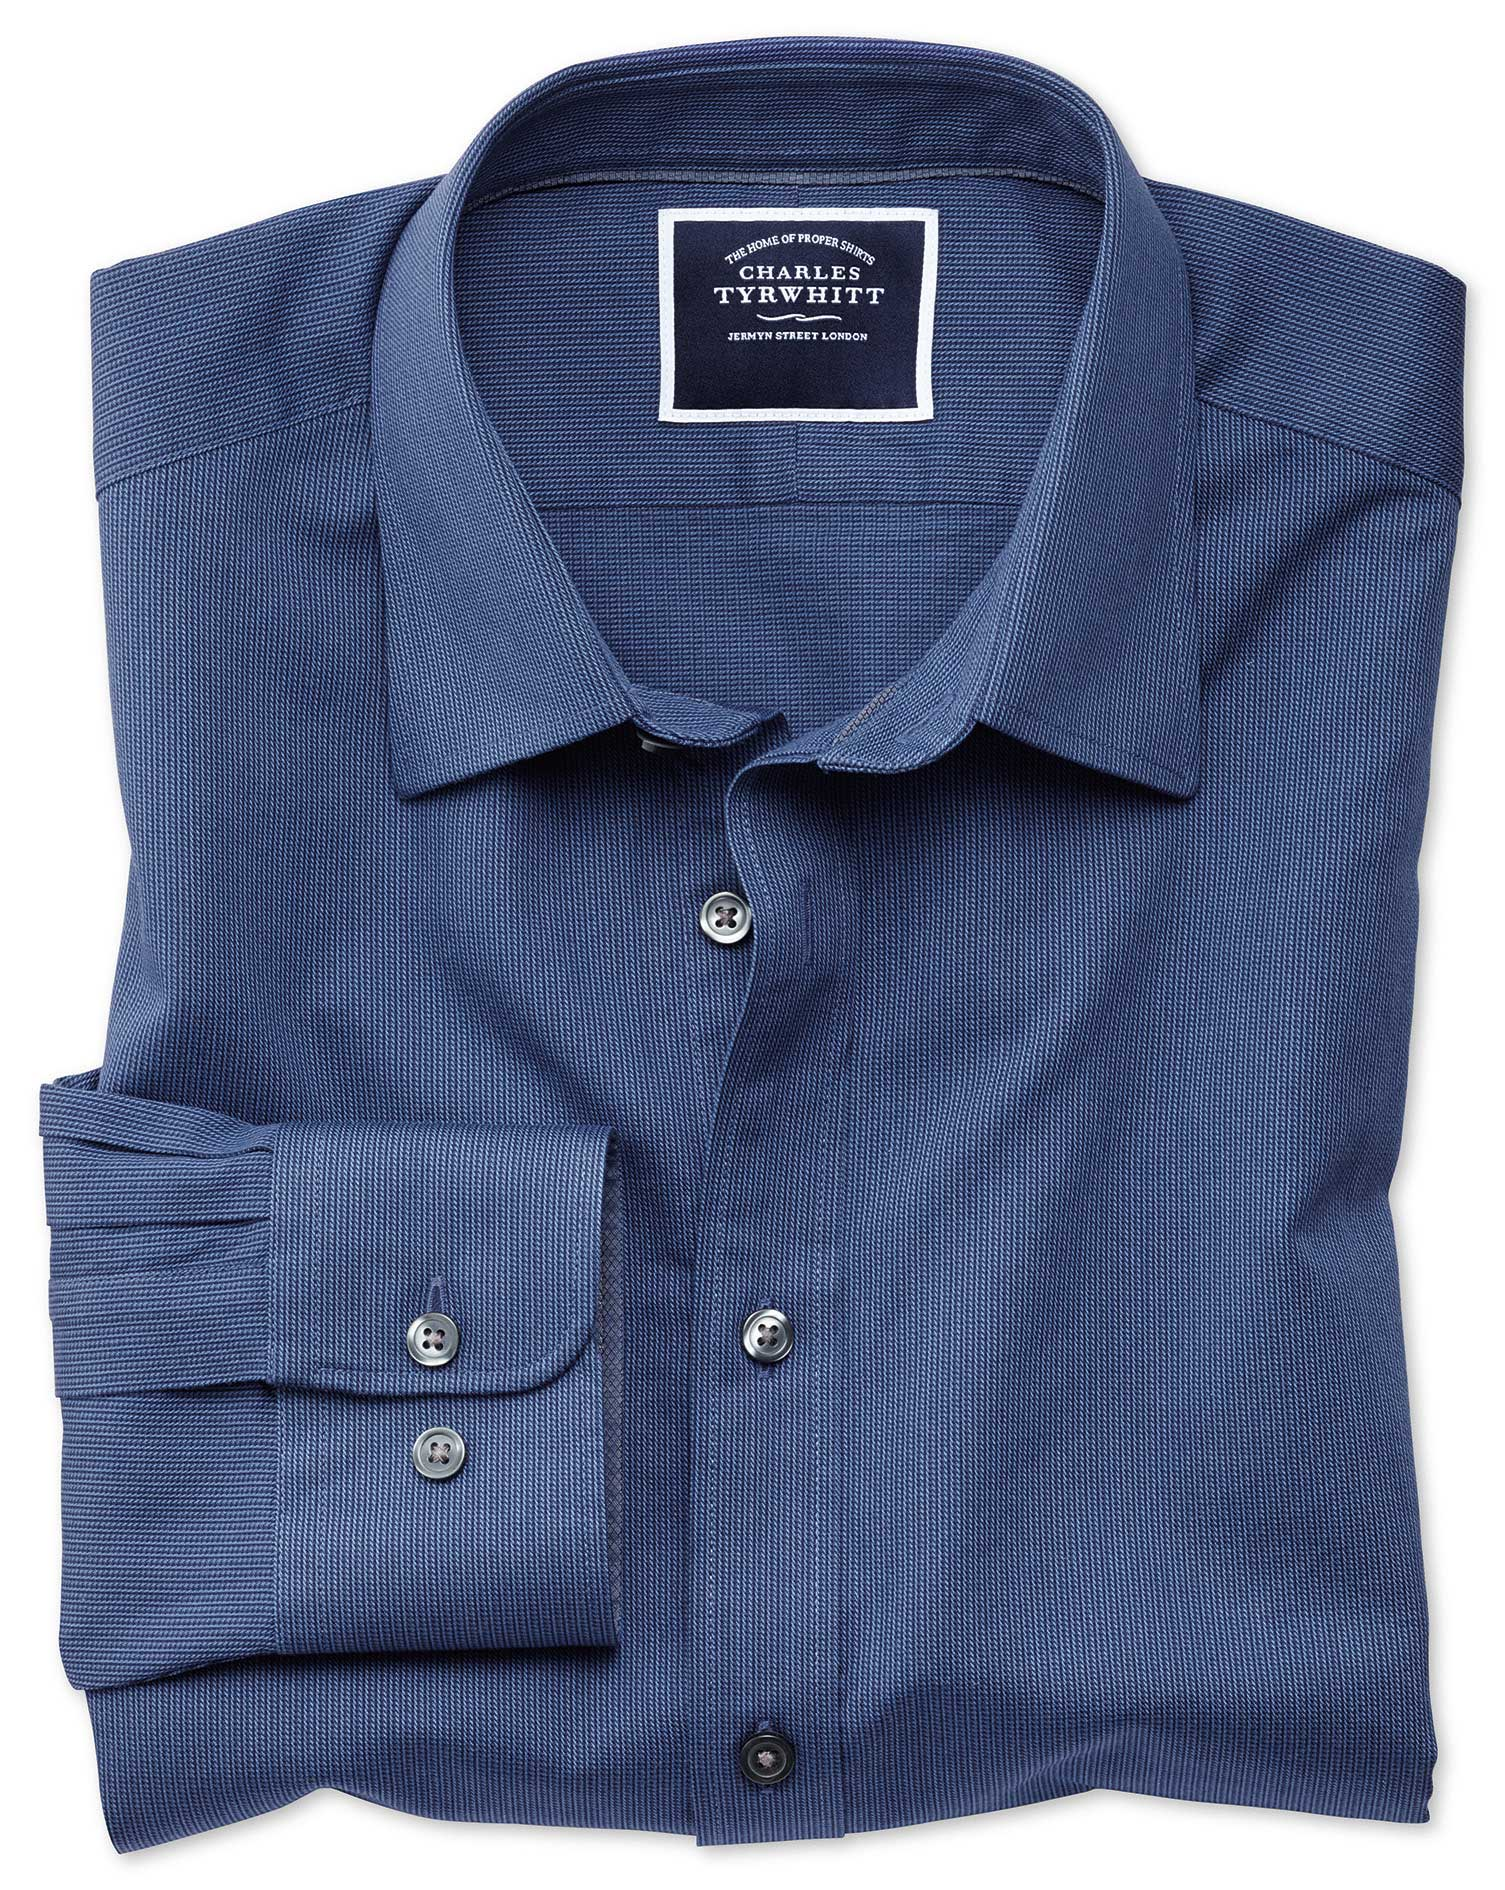 classic fit royal blue soft textured cotton casual shirt single cuff size xxxl by charles tyrwhitt